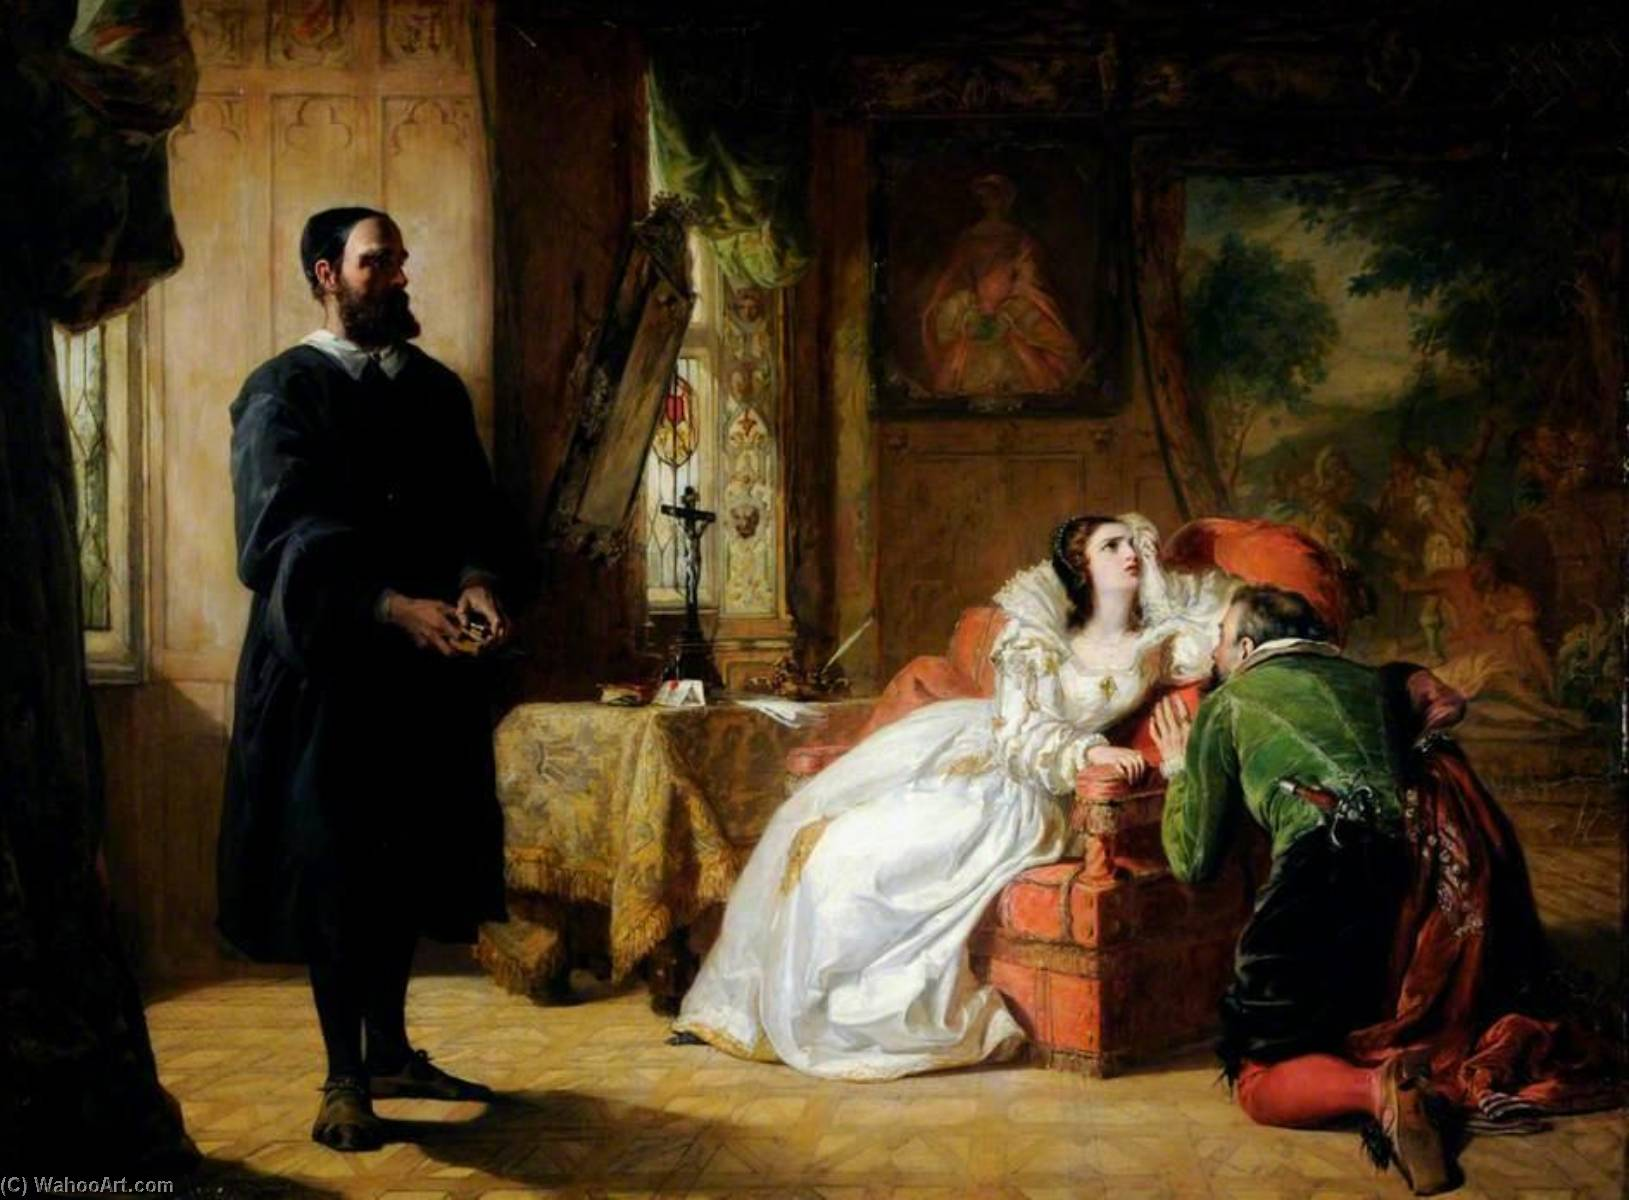 john knox réprimandant marie  reine  de  Écossais , 1844 de William Powell Frith (1819-1909, United Kingdom) | Reproductions D'art Sur Toile | WahooArt.com